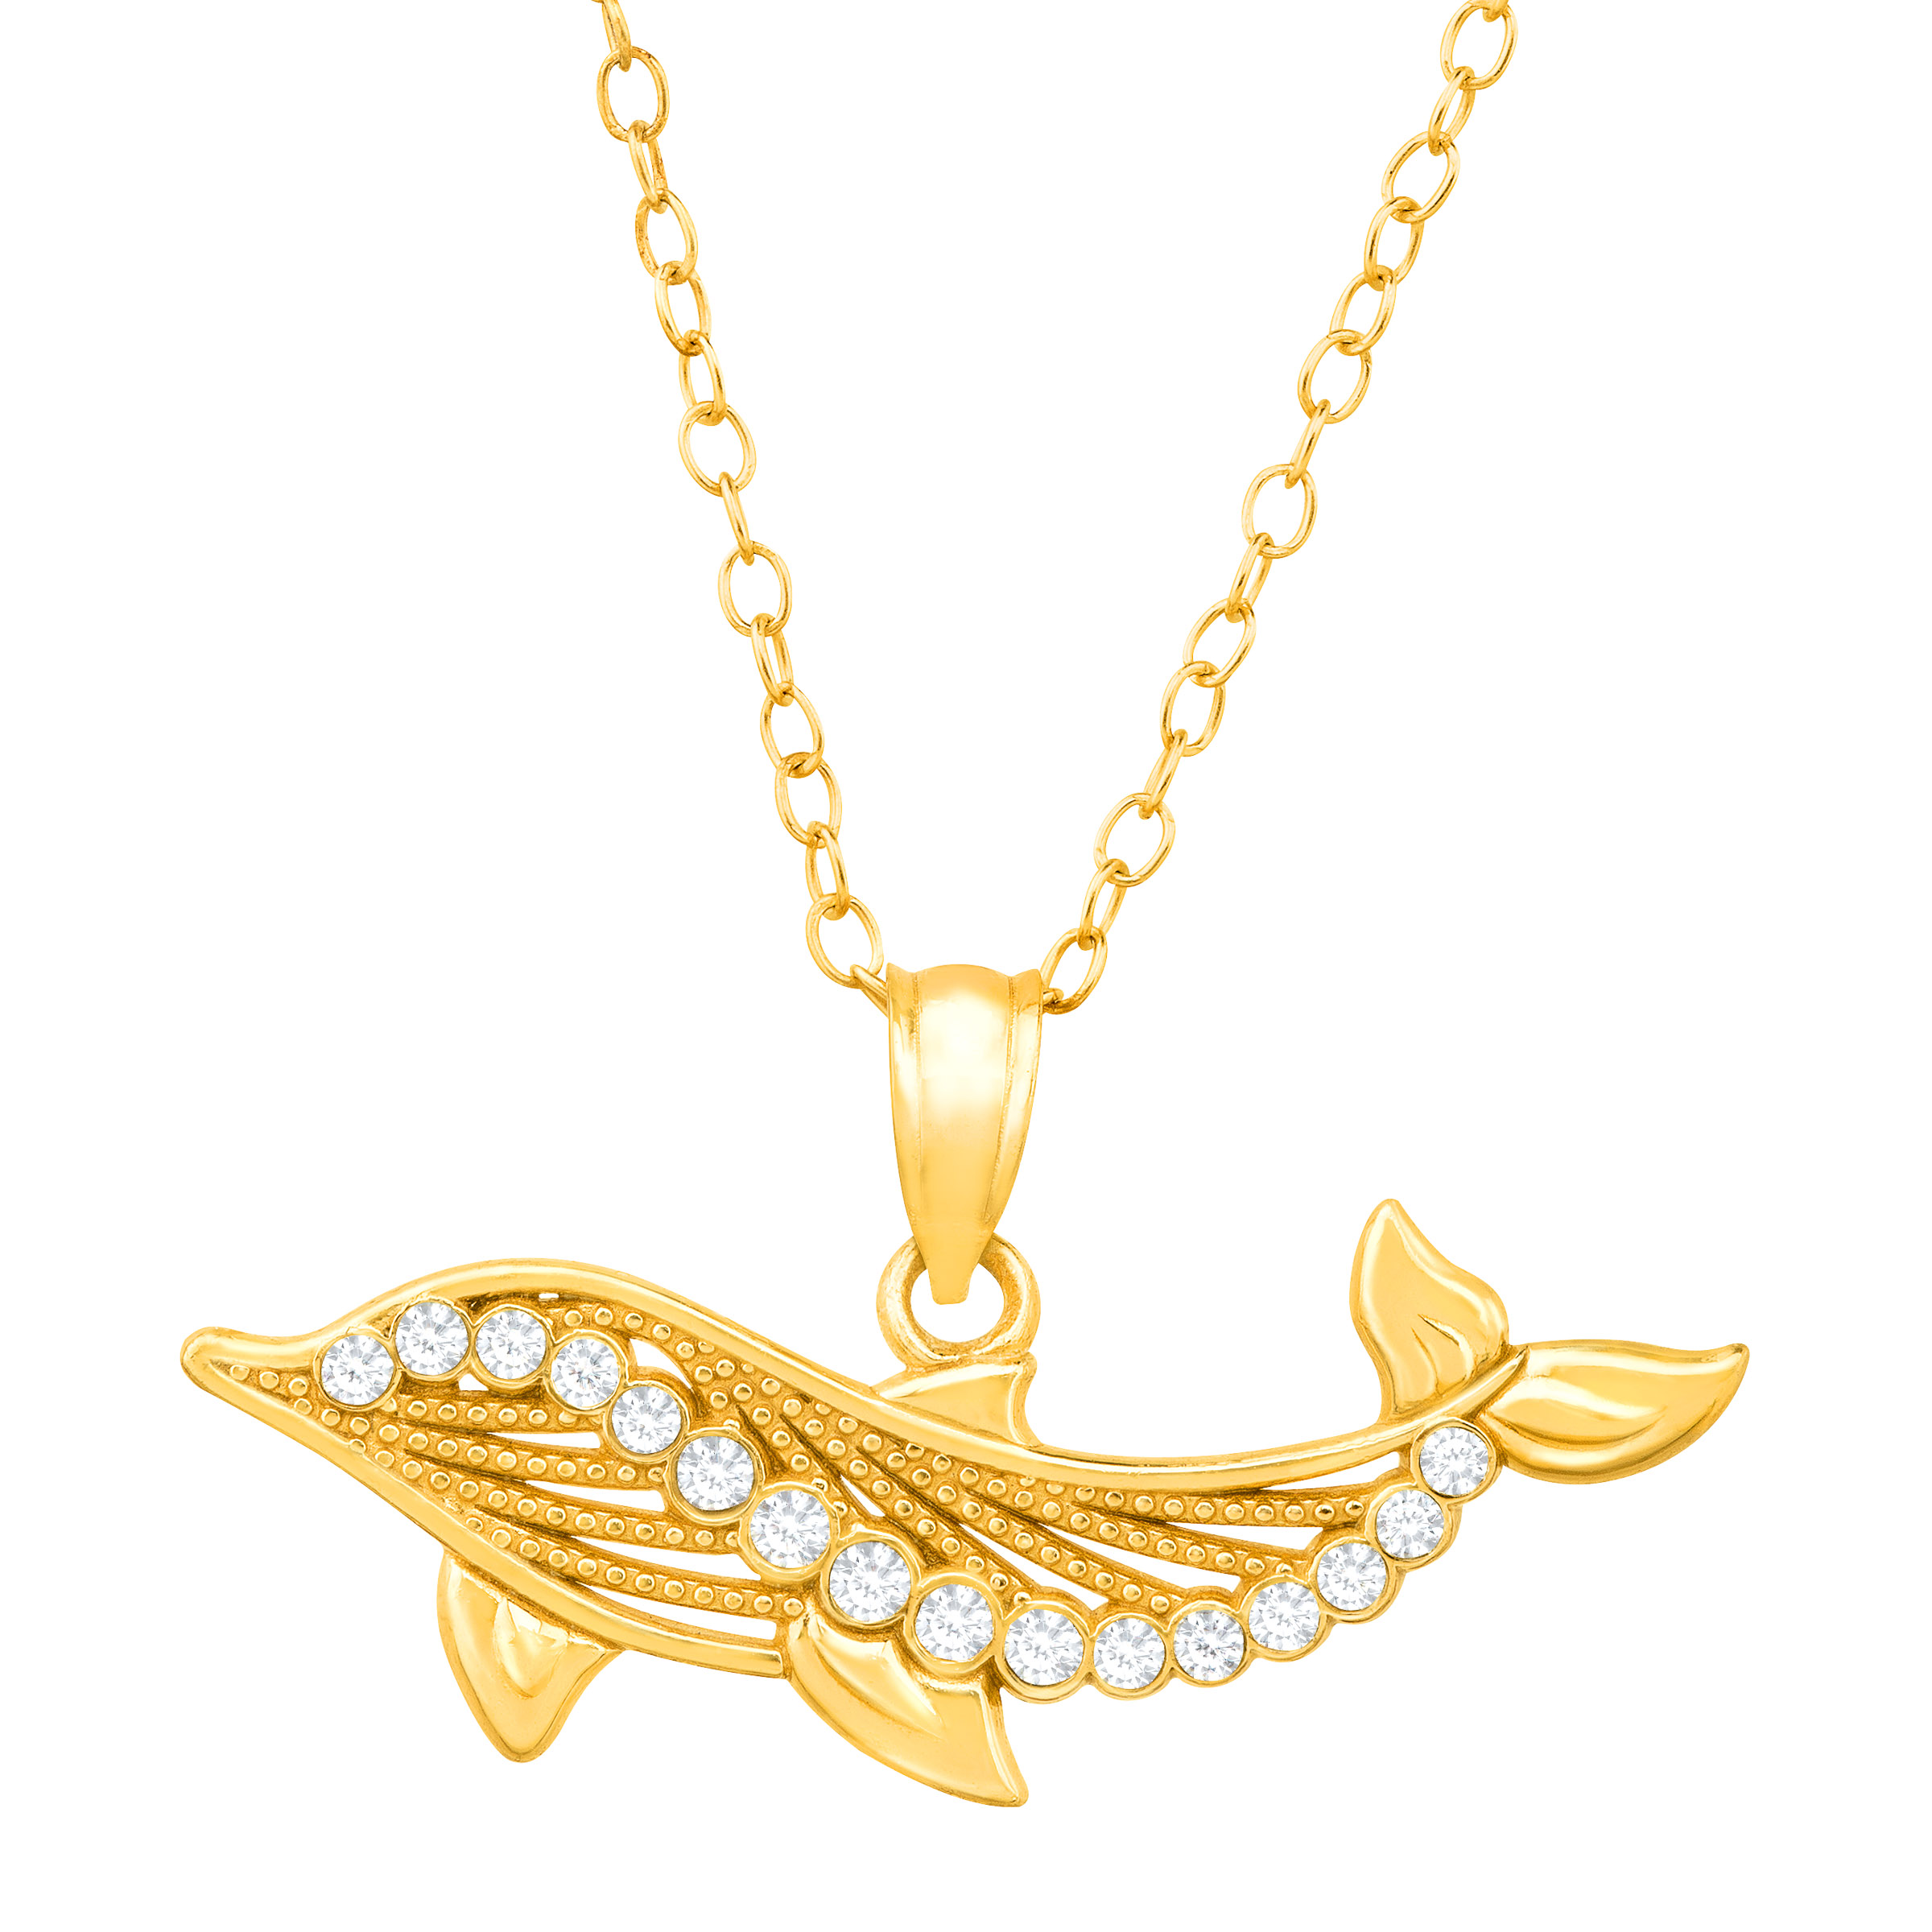 Crystaluxe Dolphin Pendant Necklace with Swarovski Crystals in 18kt Gold over Sterling Silver